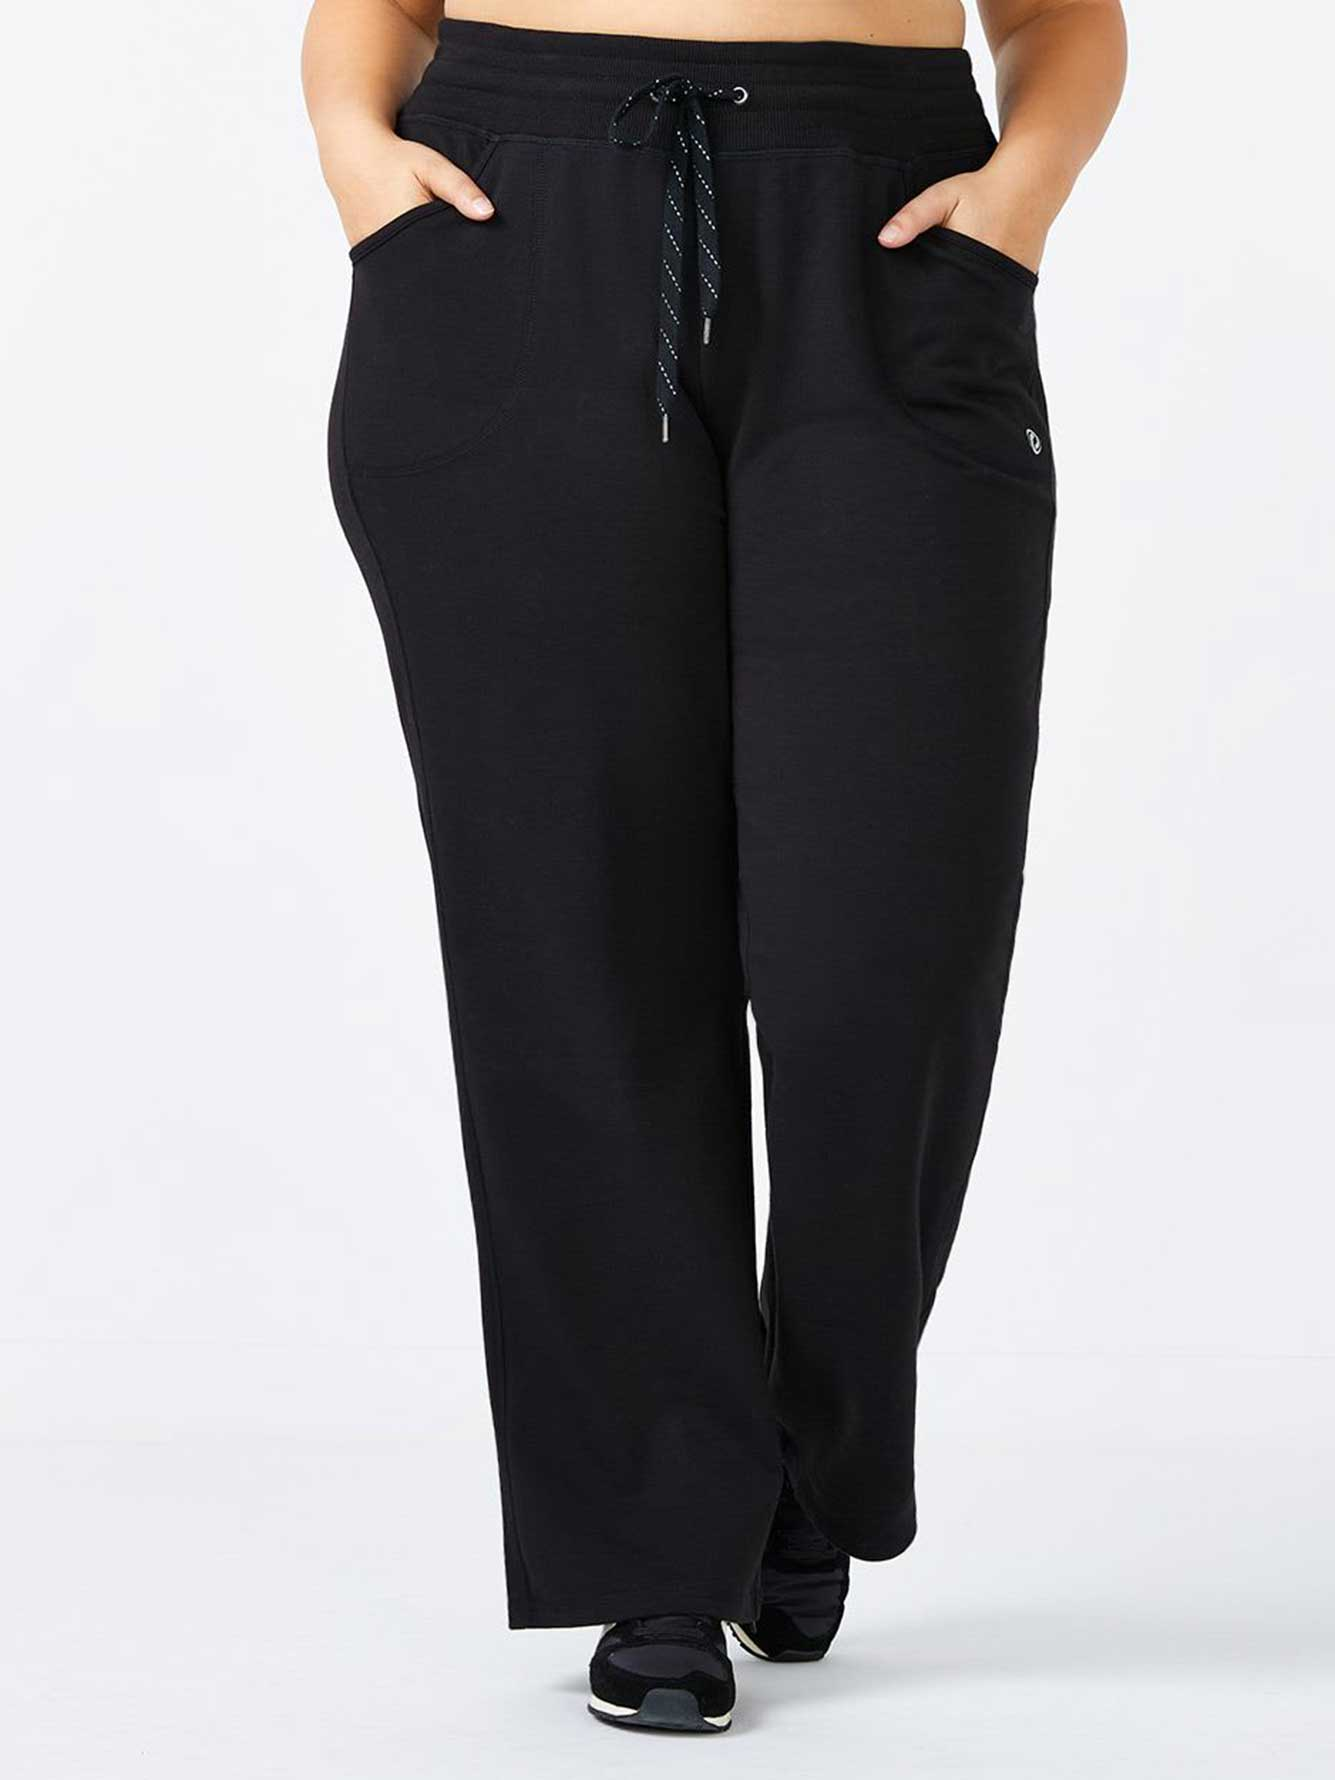 Athleisure - Plus-Size Relaxed Jogger Pant